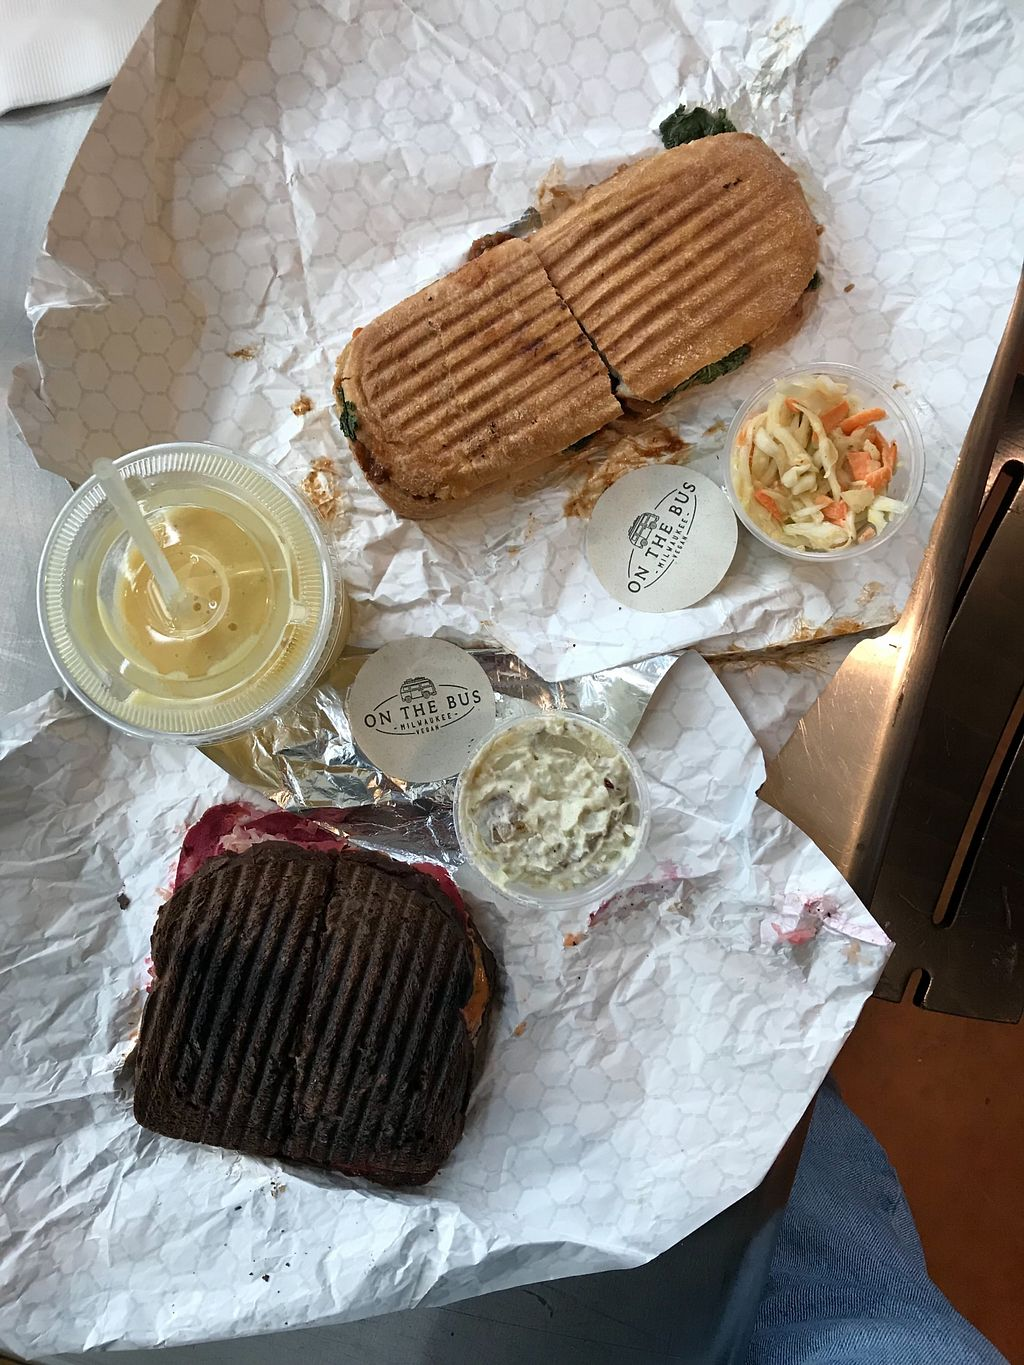 """Photo of On The Bus  by <a href=""""/members/profile/RobM"""">RobM</a> <br/>Lovely sandwiches! Barbecue seitan panini and a tempeh Reuben.  <br/> November 5, 2017  - <a href='/contact/abuse/image/99798/321892'>Report</a>"""